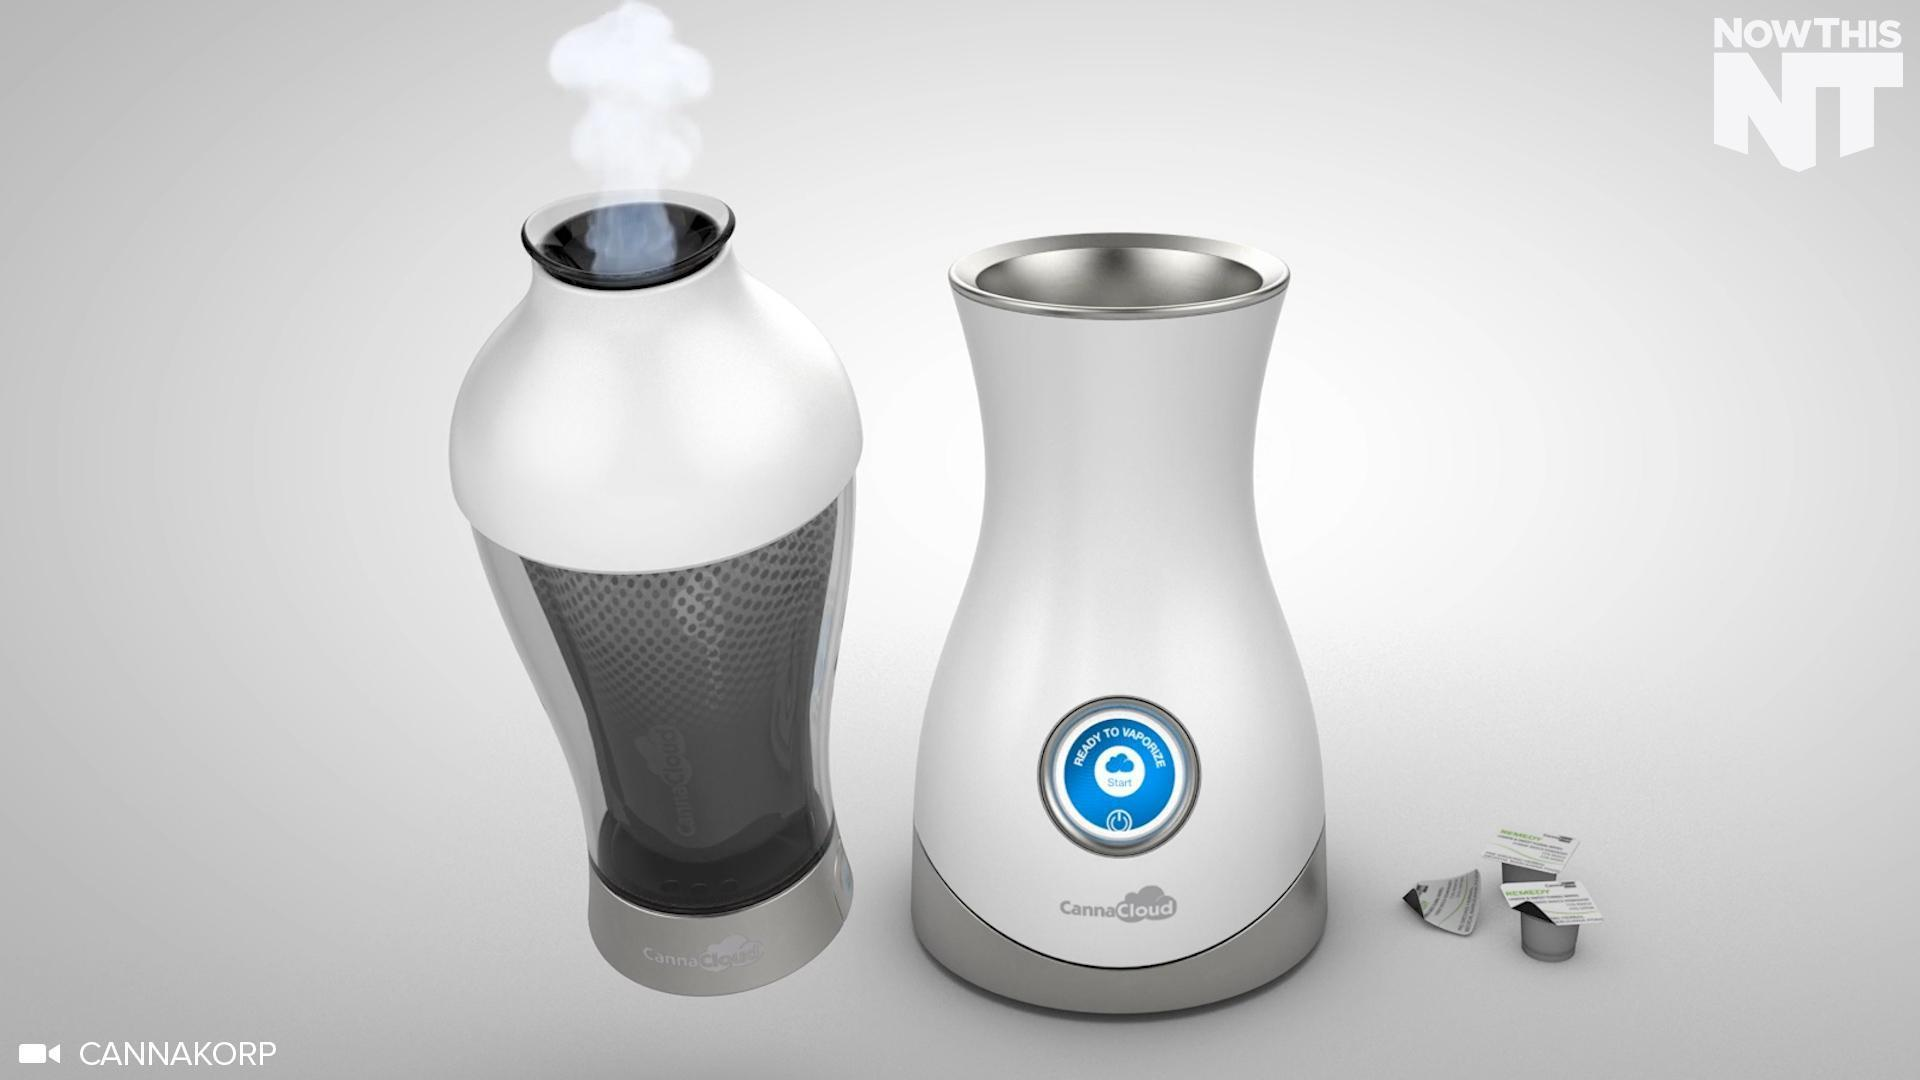 The 'CannaCloud' Is The Keurig Of Weed